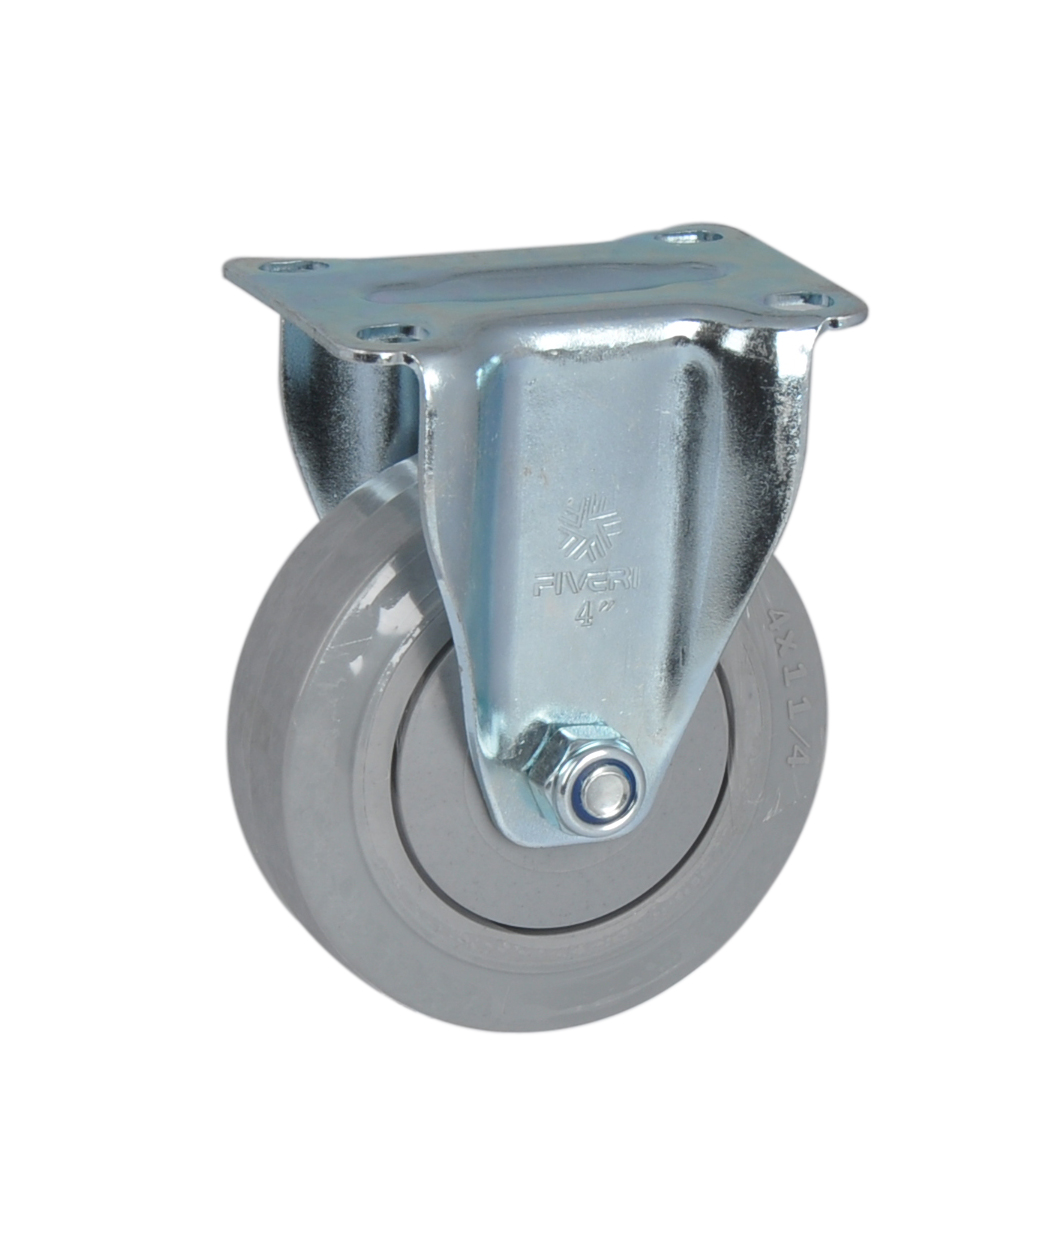 Fa furui medium-sized 4-inch directional 4 plastic core super synthetic rubber (pp + tpr) casters 5004A-736